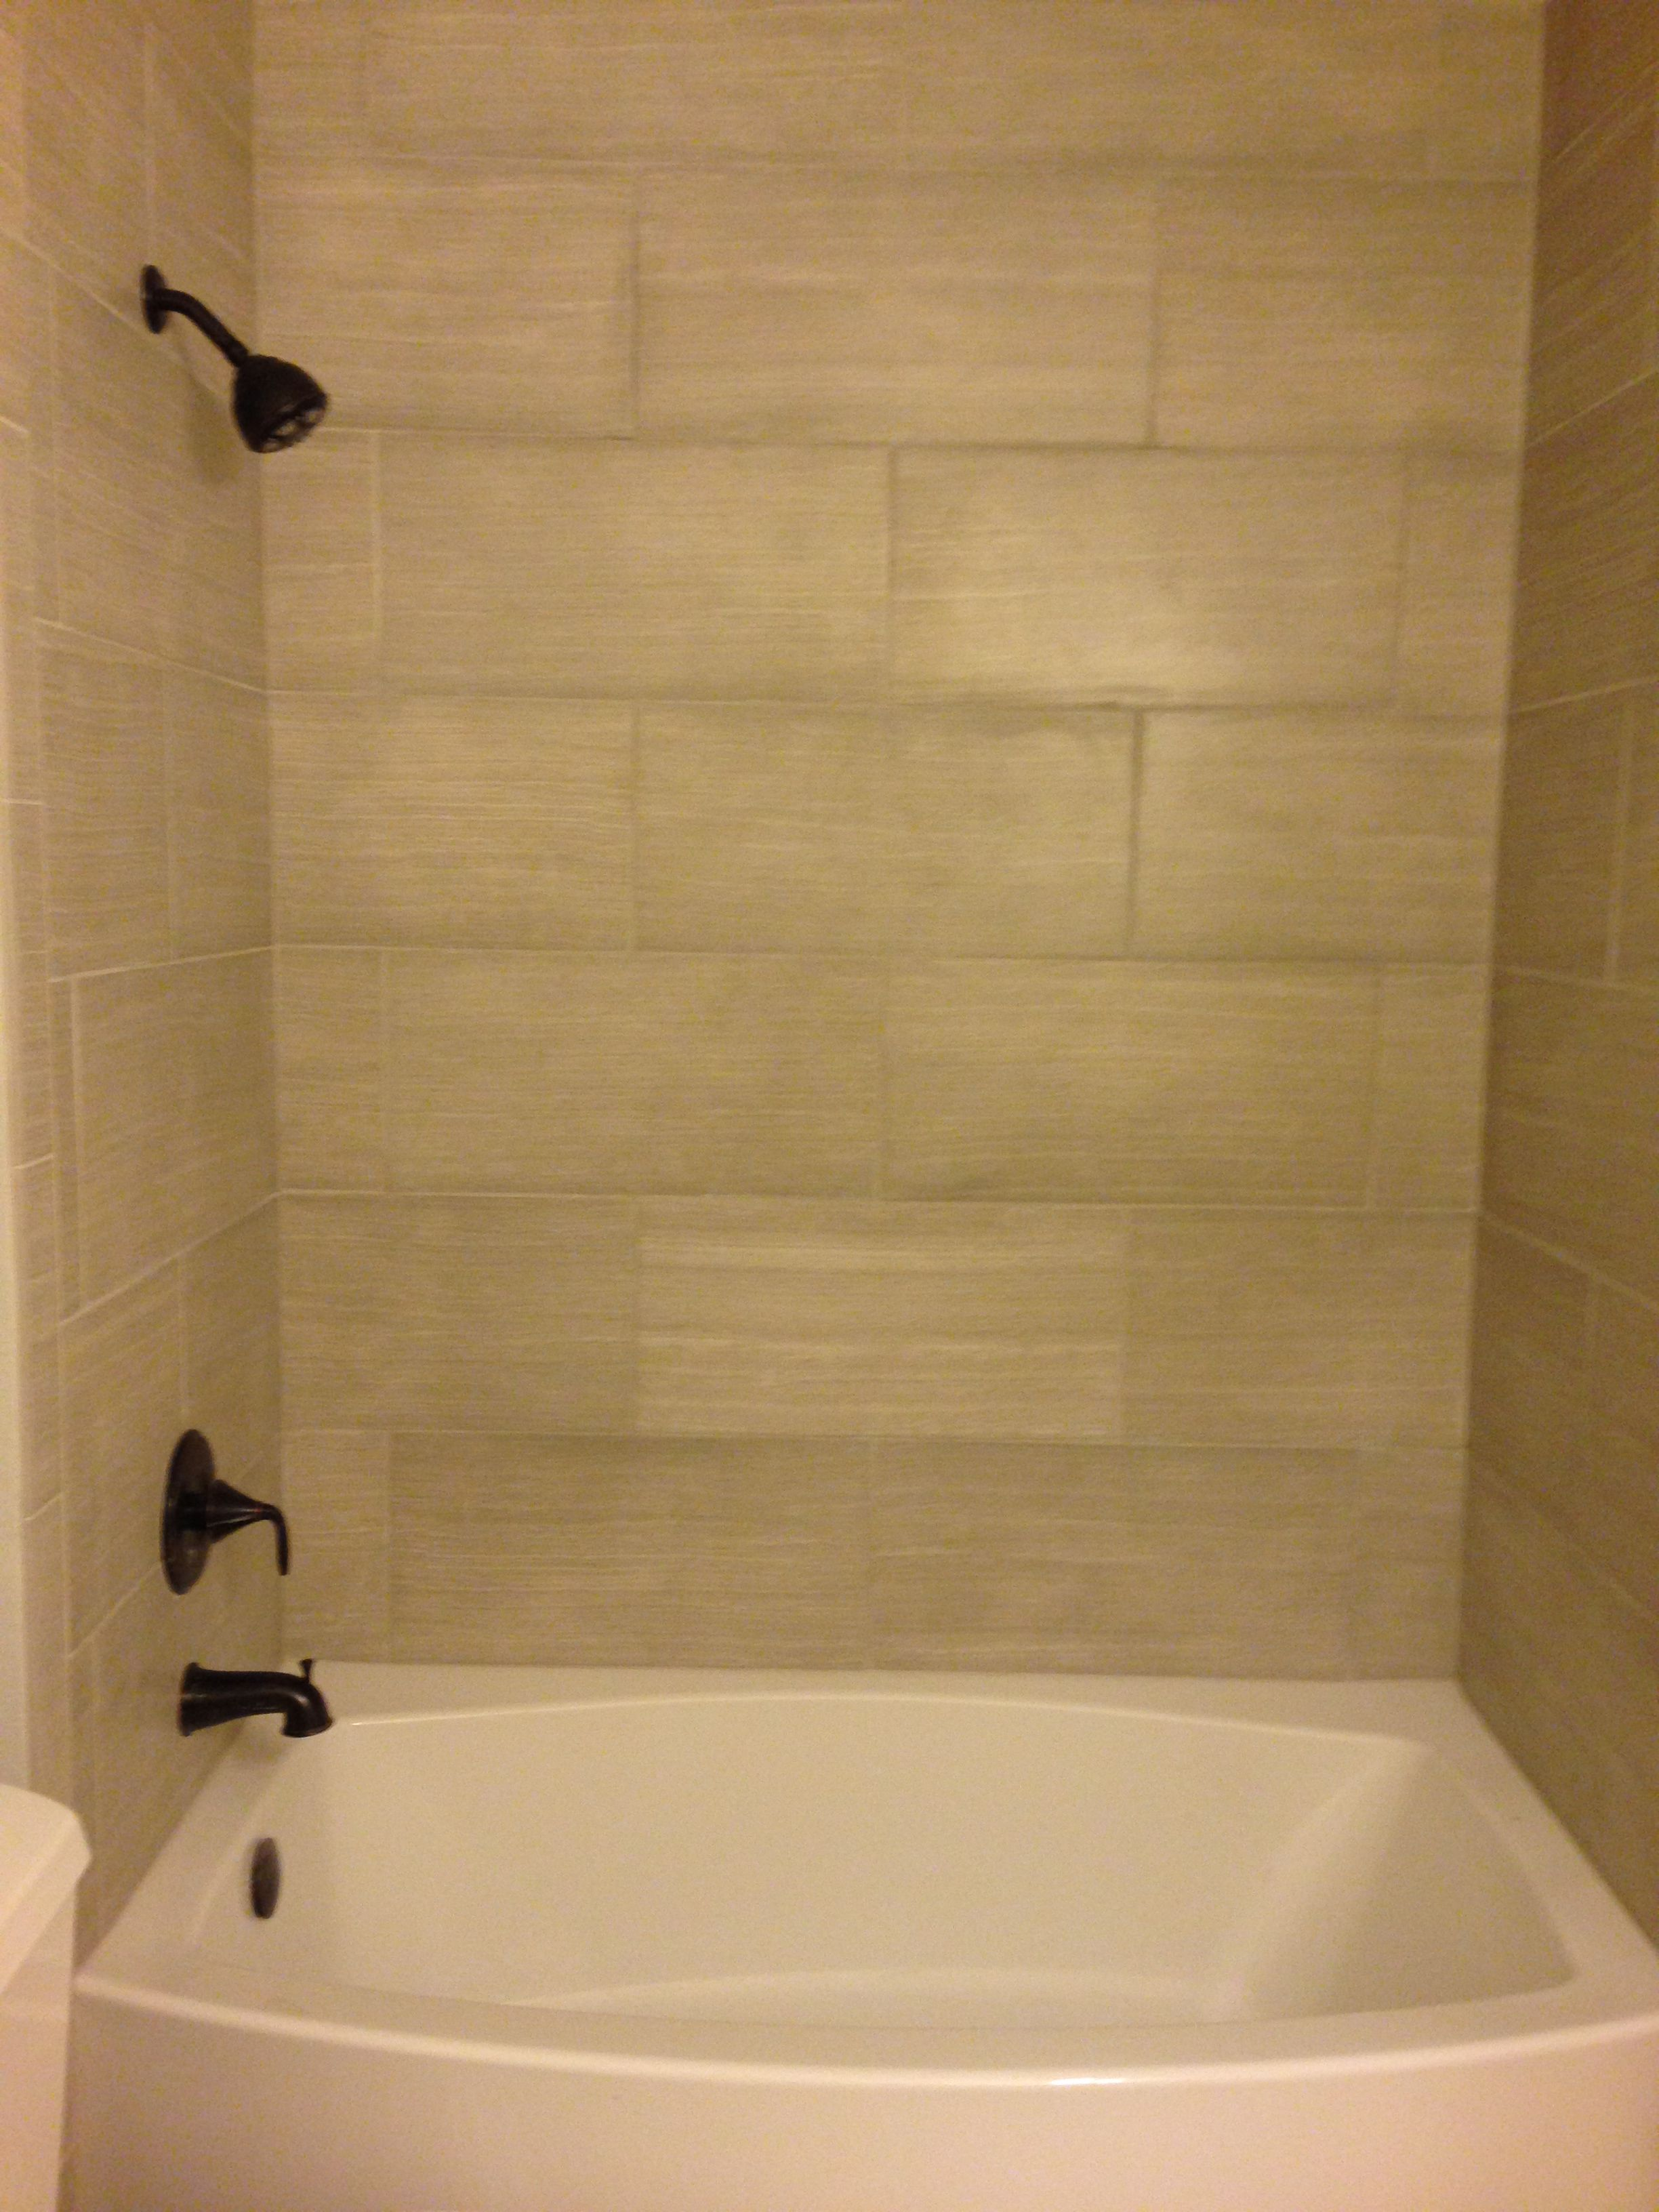 Leonia Silver Tile From Lowes Kohler Expanse Curved Tub Perfect